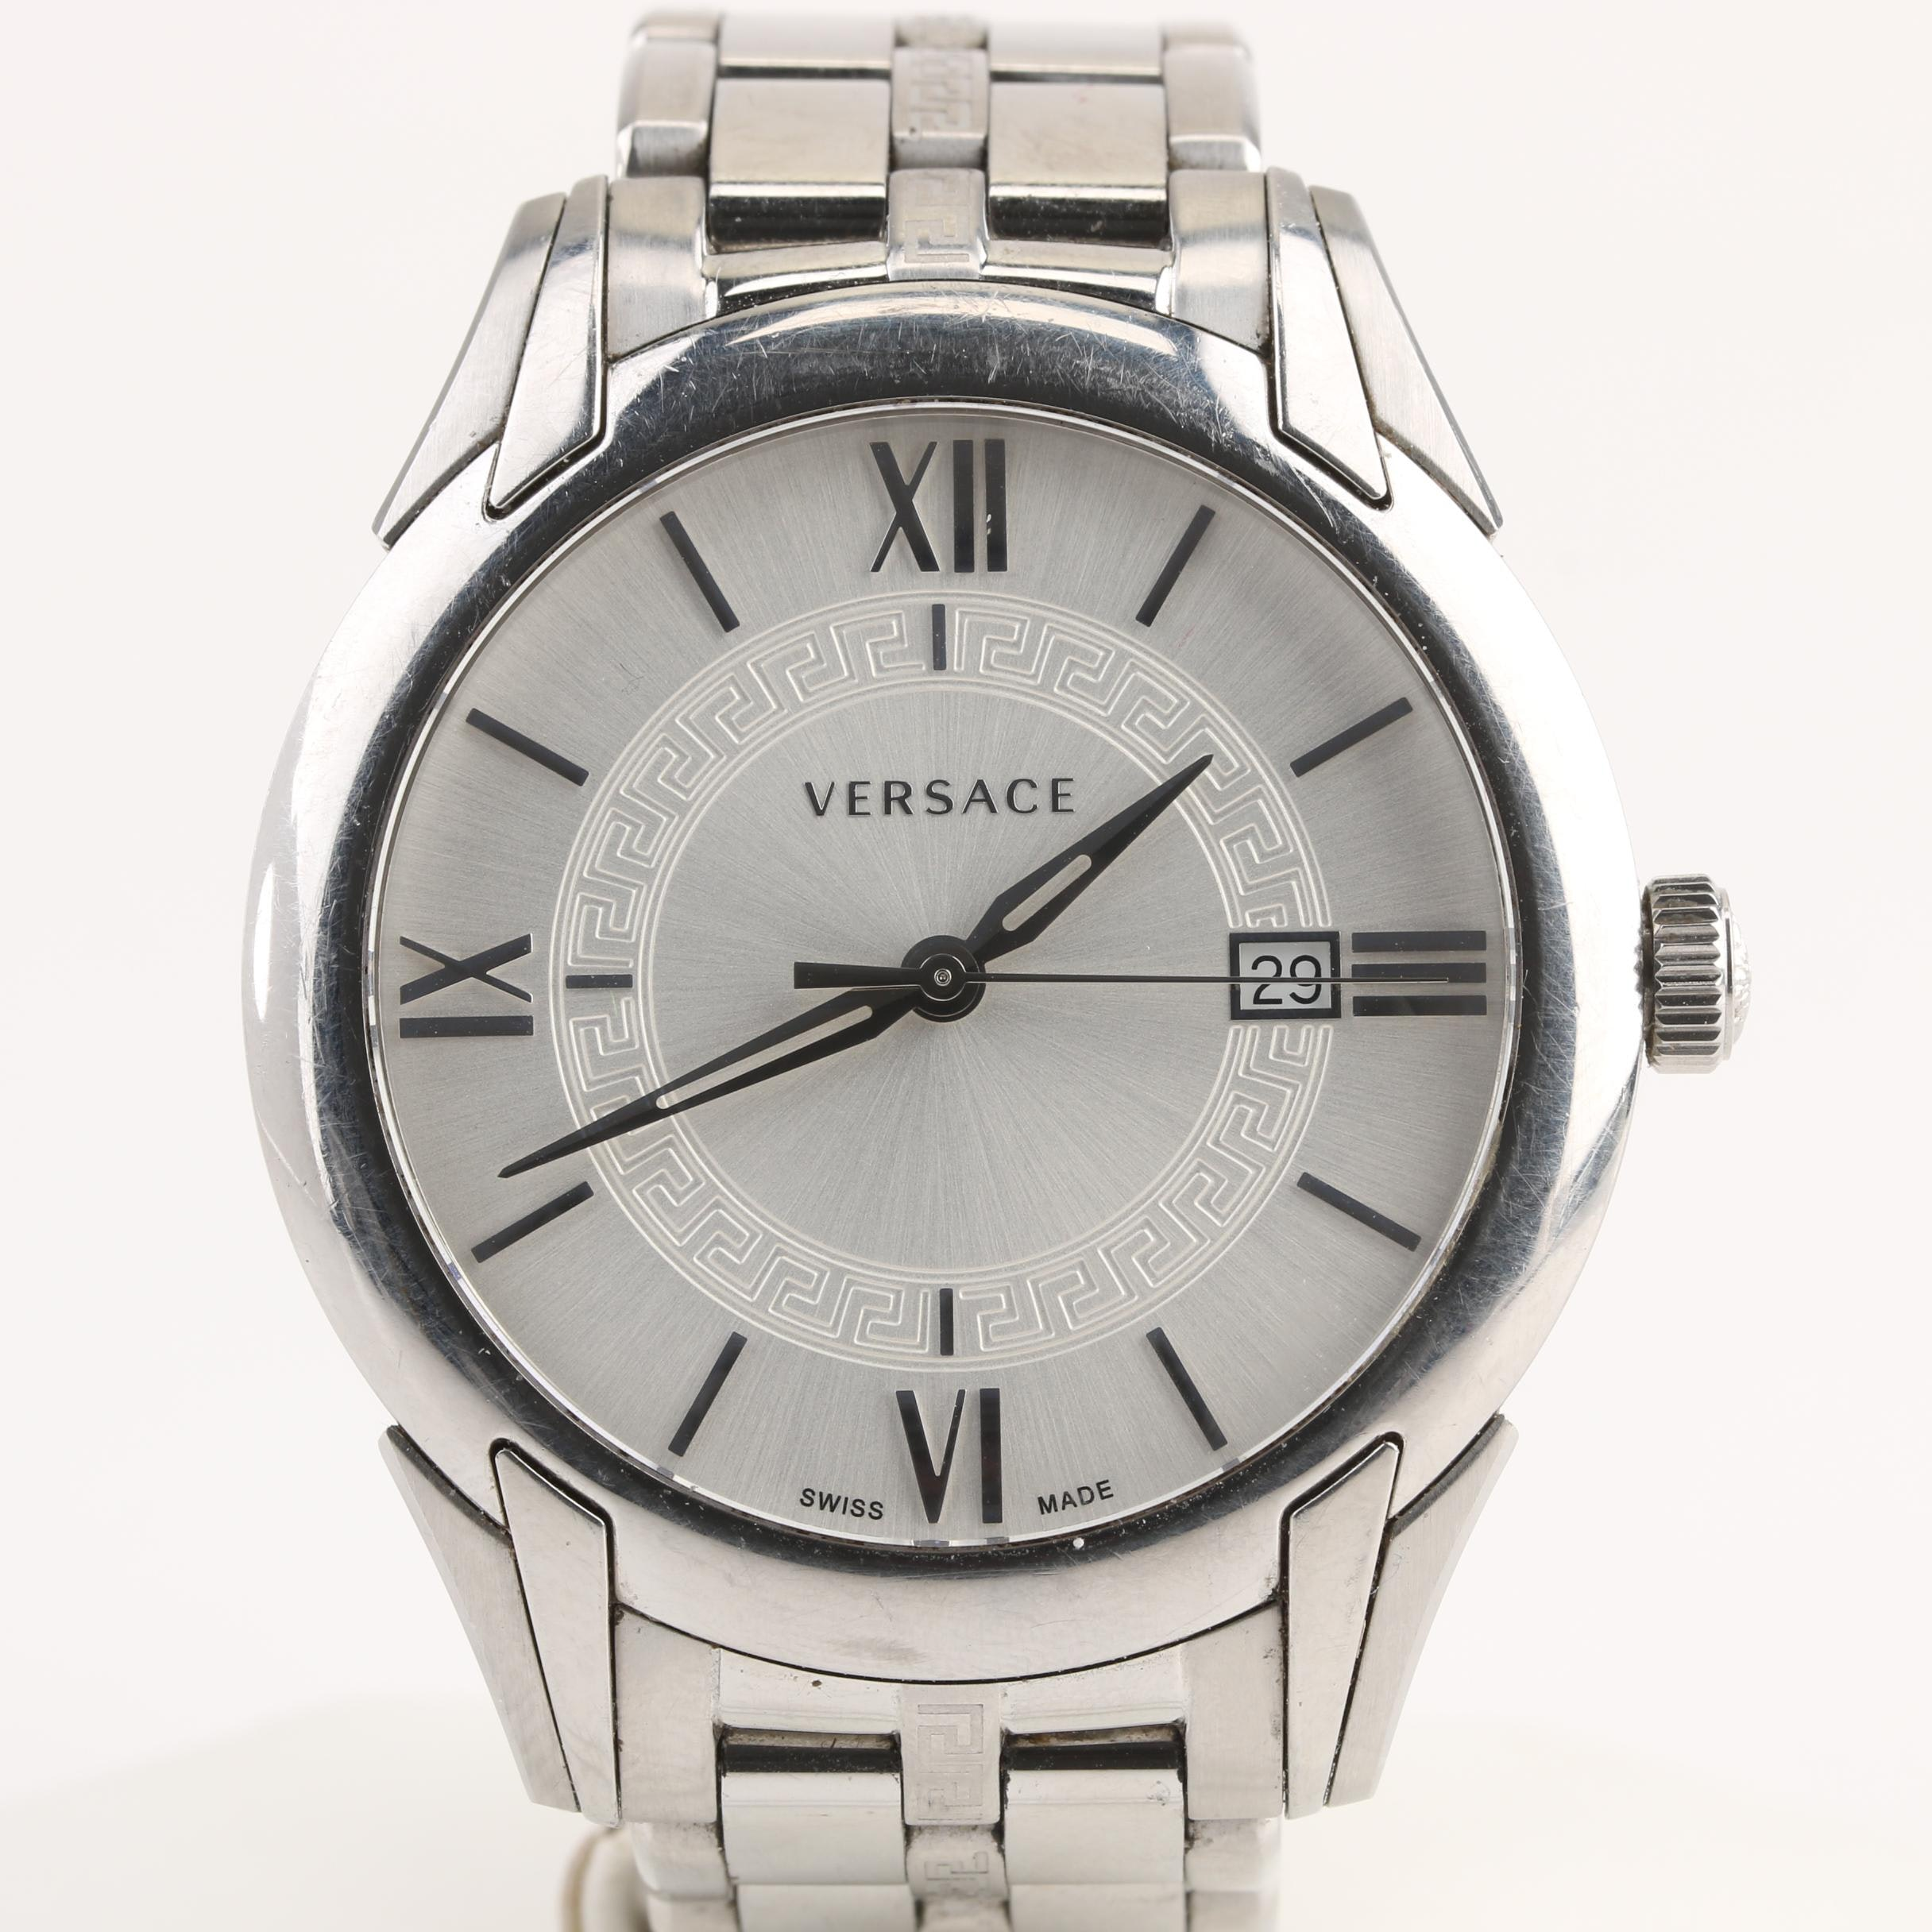 Versace Stainless Steel Wristwatch With Date Window